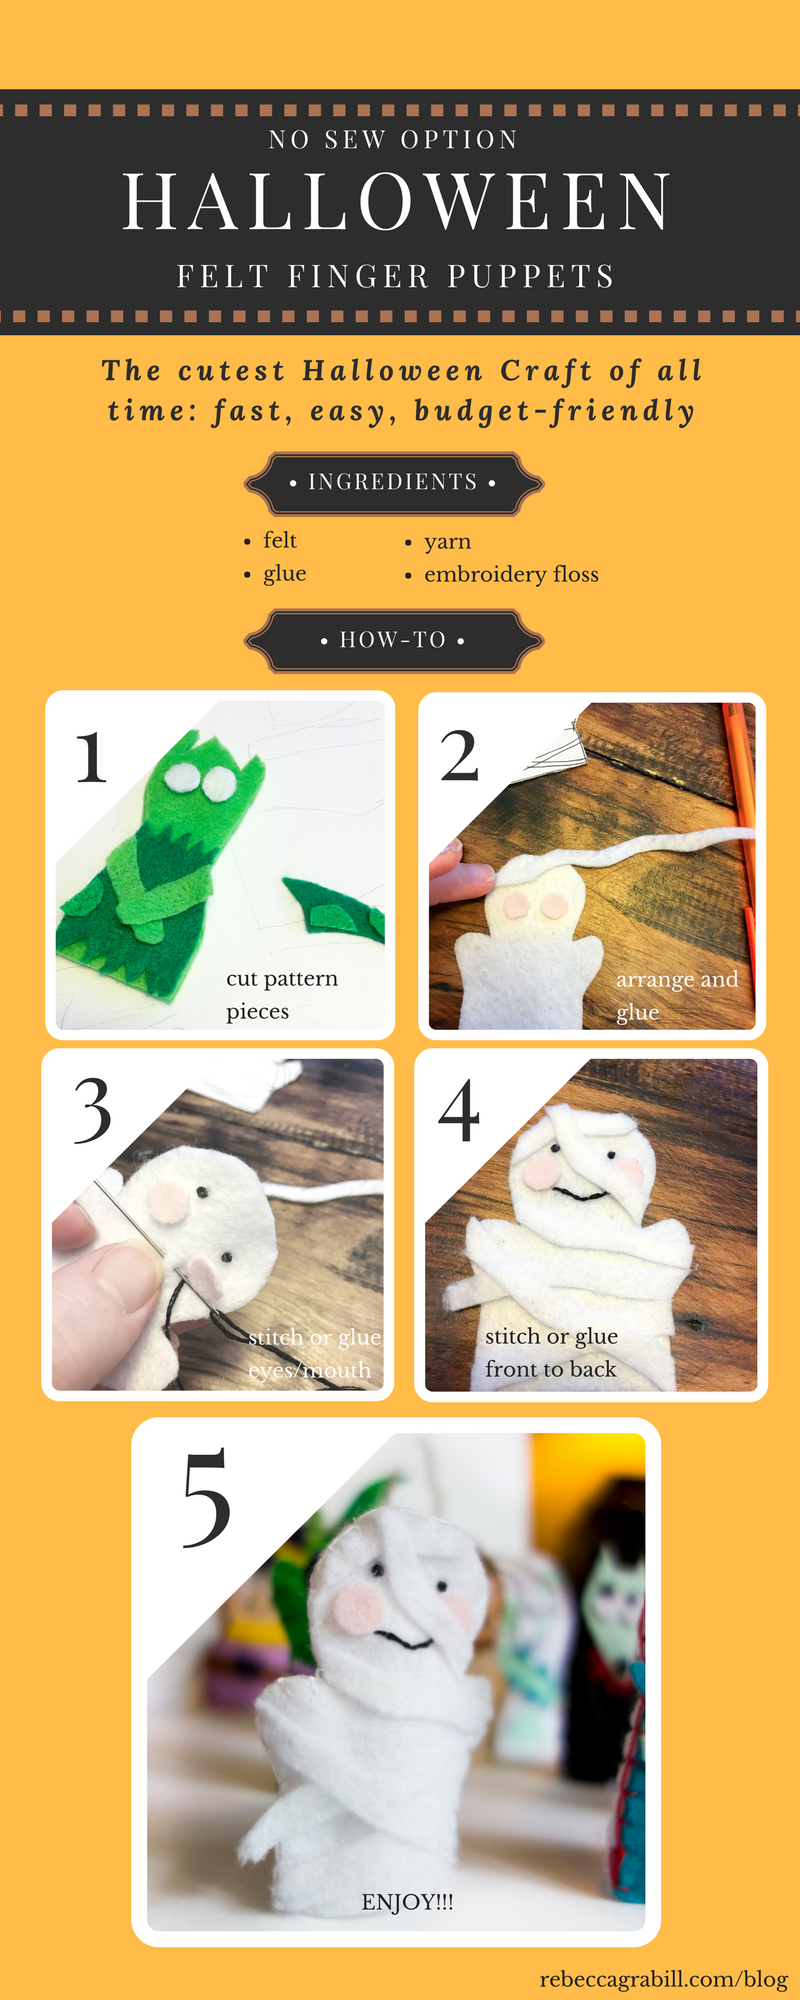 This infographic explains how to make the cutest Halloween Finger Puppets to go with the book Halloween Good Night by Rebecca Grabill